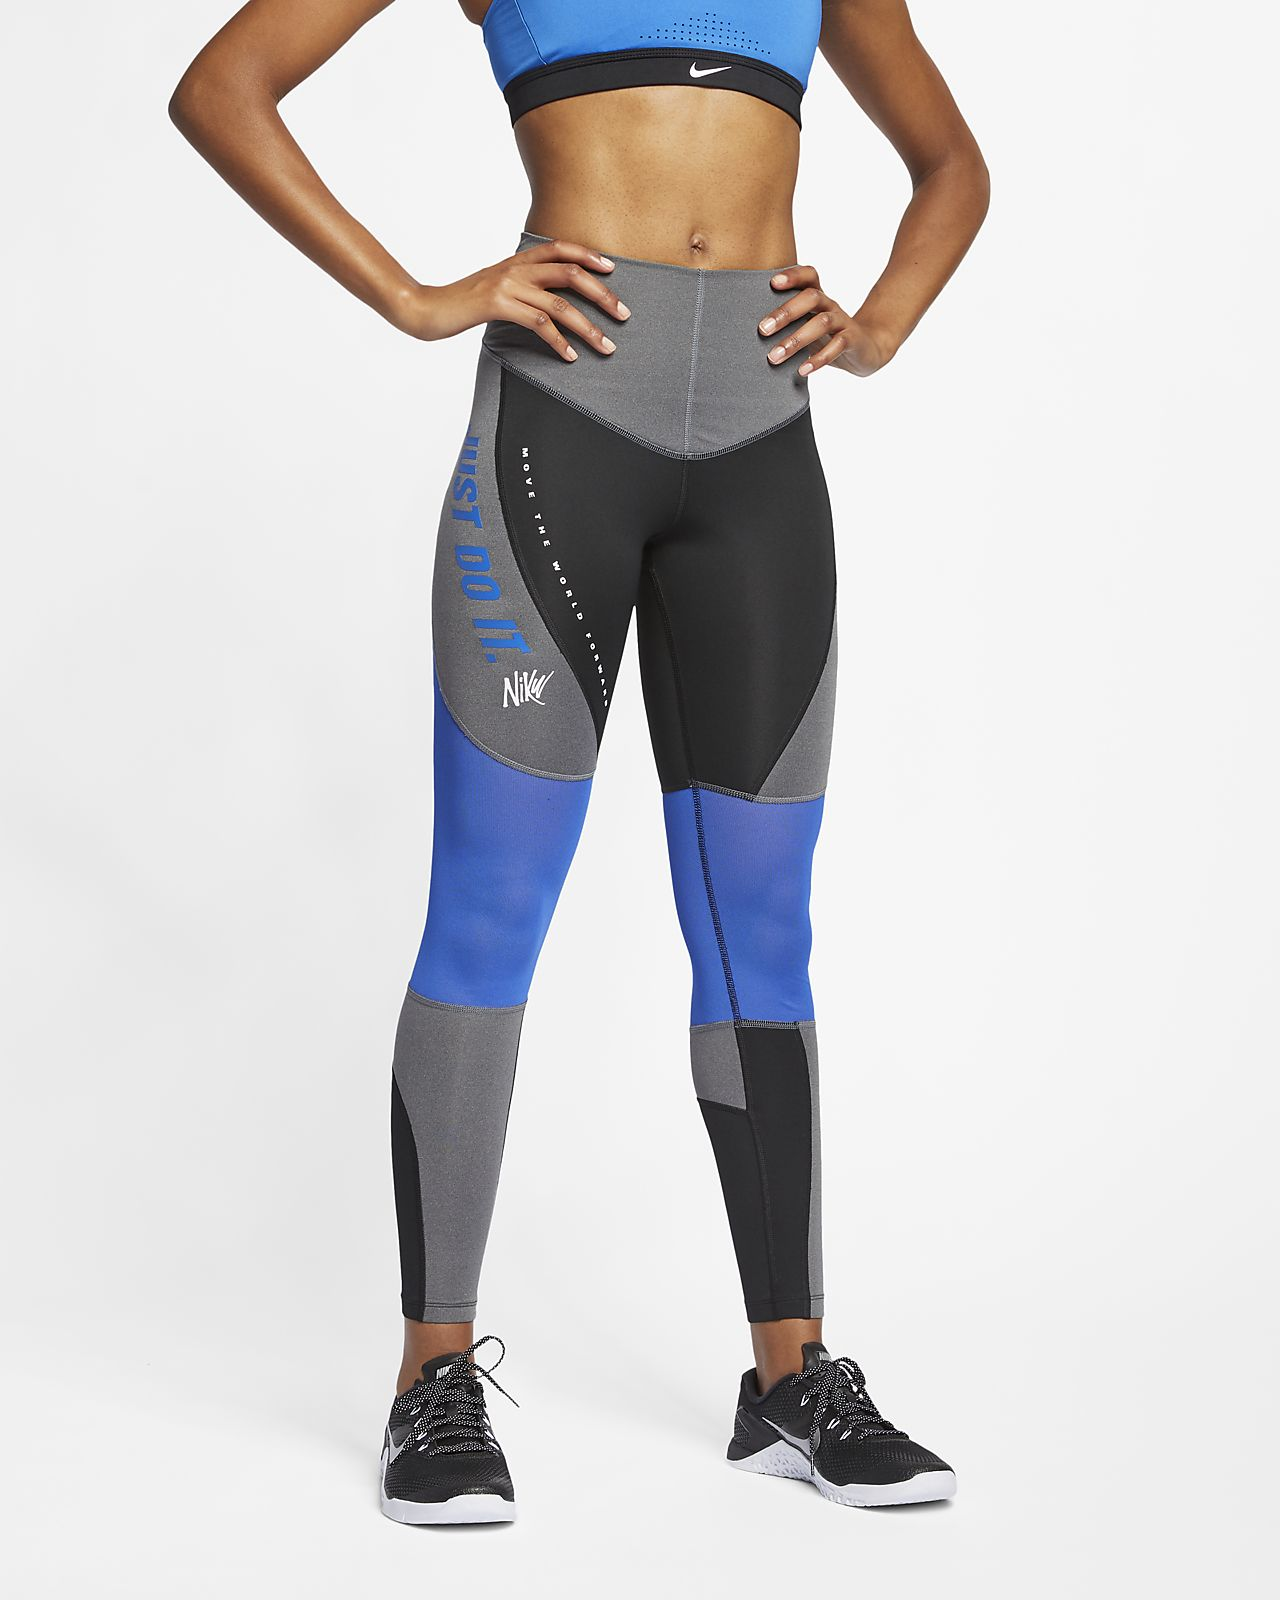 Nike Power Women's Training Tights